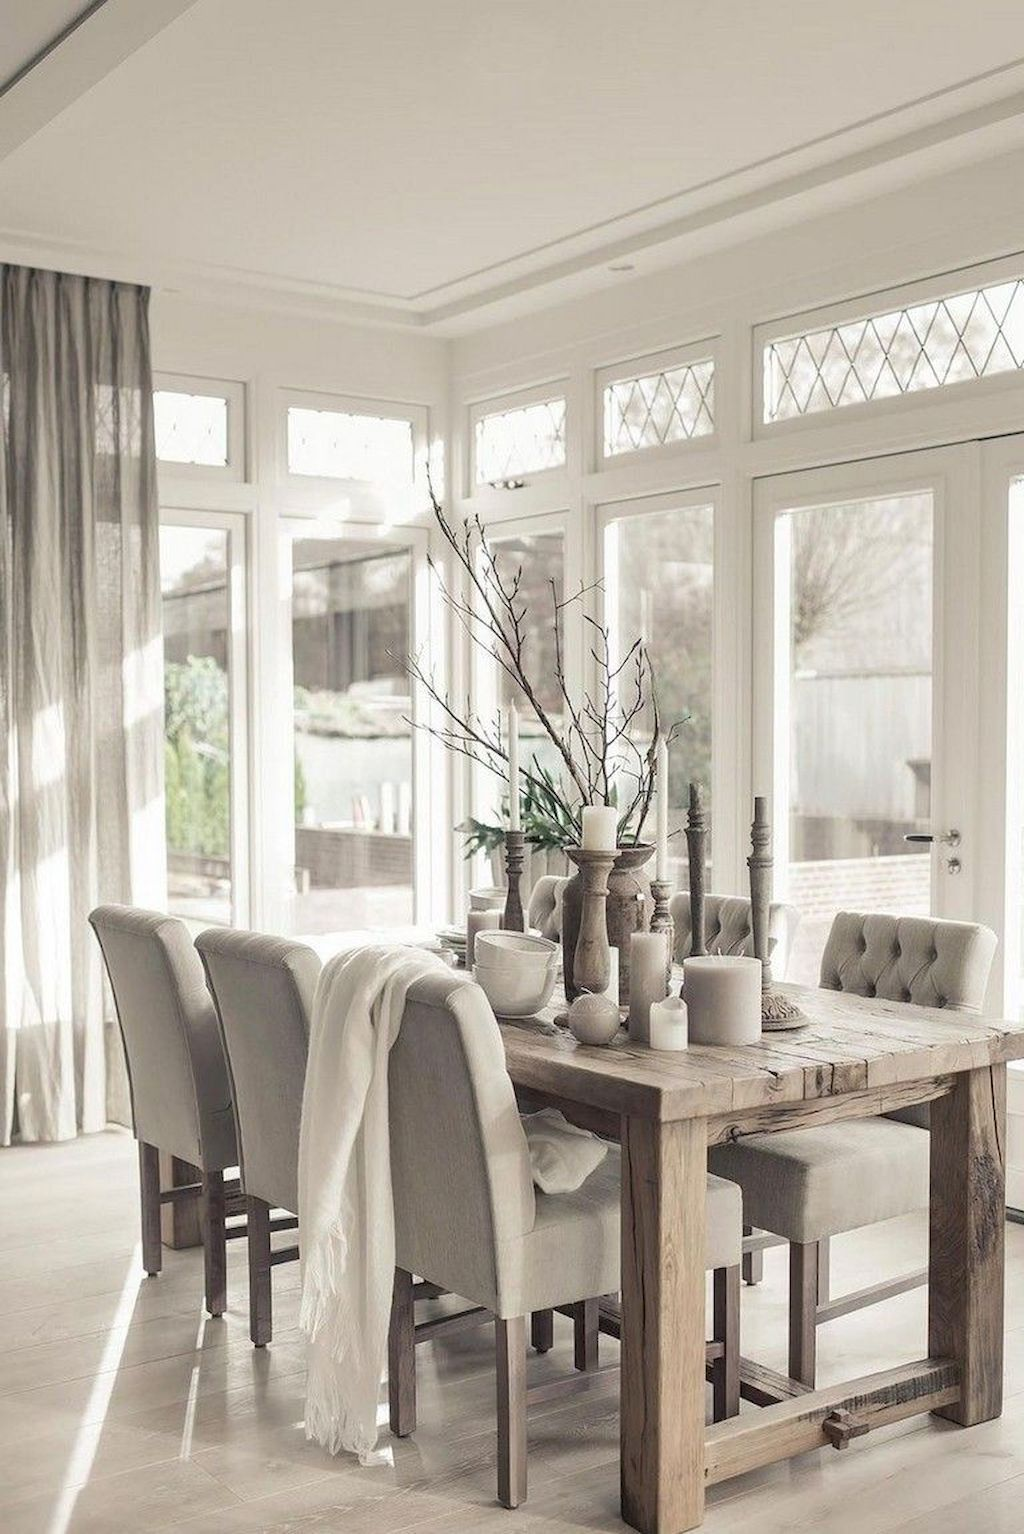 75 Modern Farmhouse Dining Room Decor Ideas In 2020 Dining Room